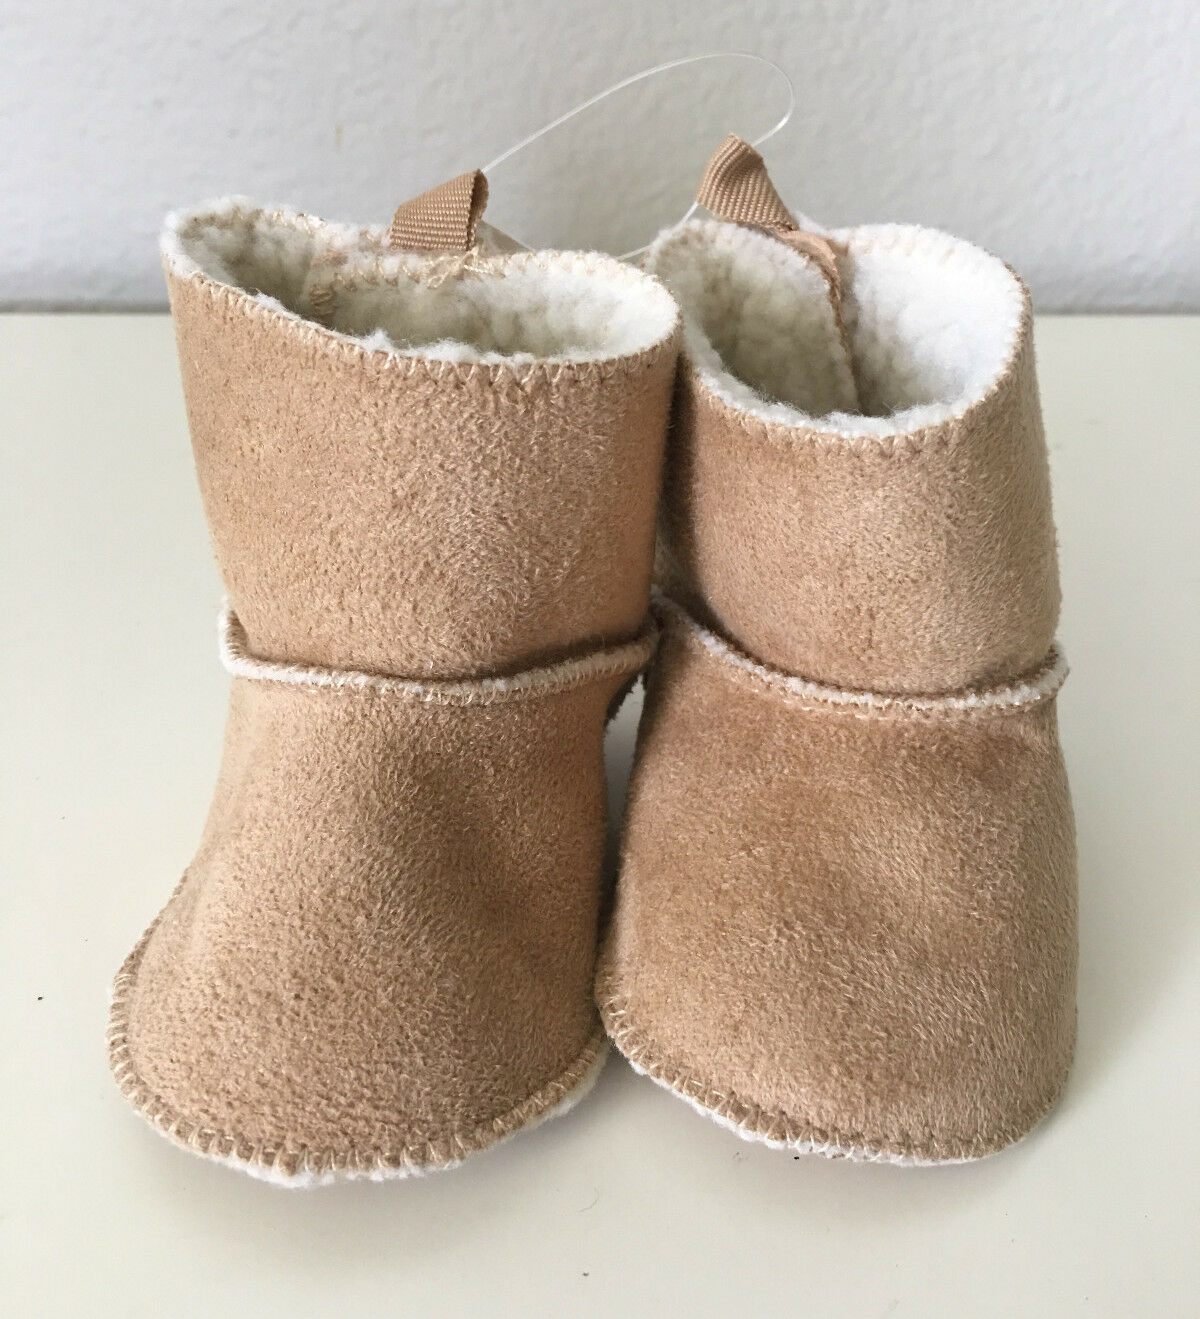 GAP Baby Unisex Size 0-3 Months NWT Tan Shearling Boots Booties Shoes